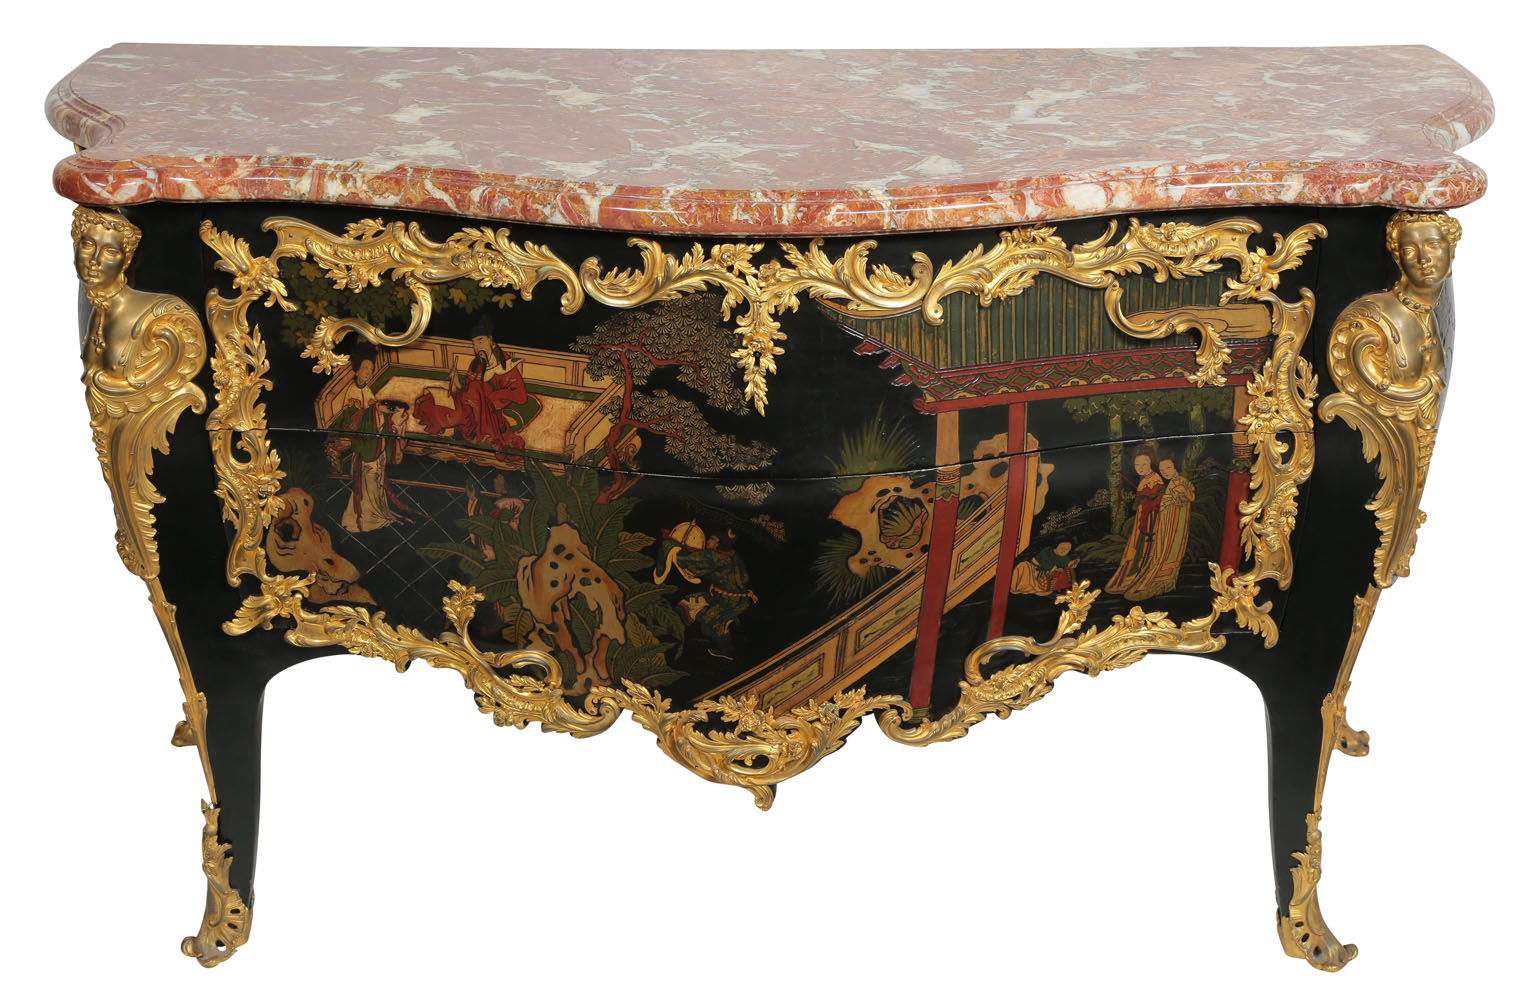 Francois Illas New Tradition: An Extraordinary Fine And Palatial French Louis XV Style